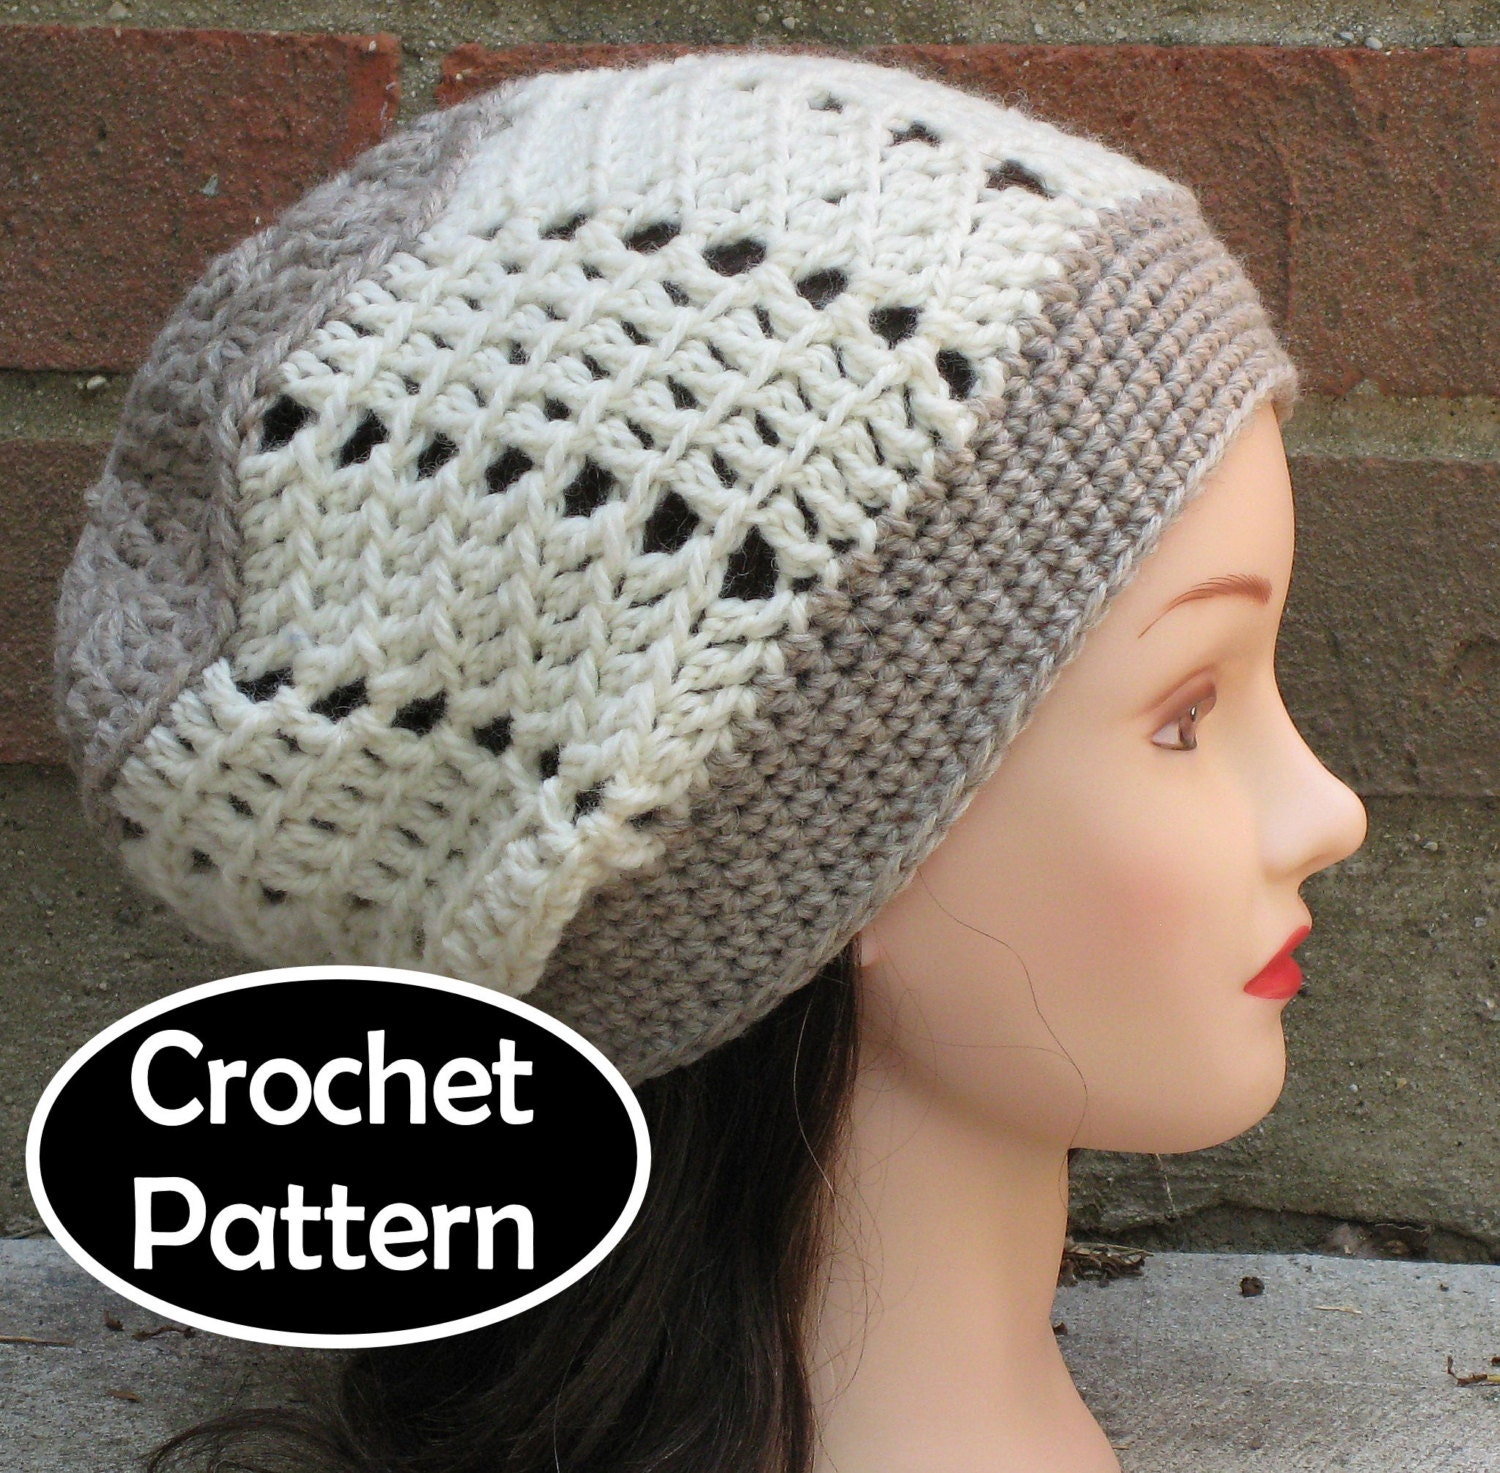 Crochet Hat Pattern Download : CROCHET HAT PATTERN Pdf Instant Download Naomi by AlyseCrochet